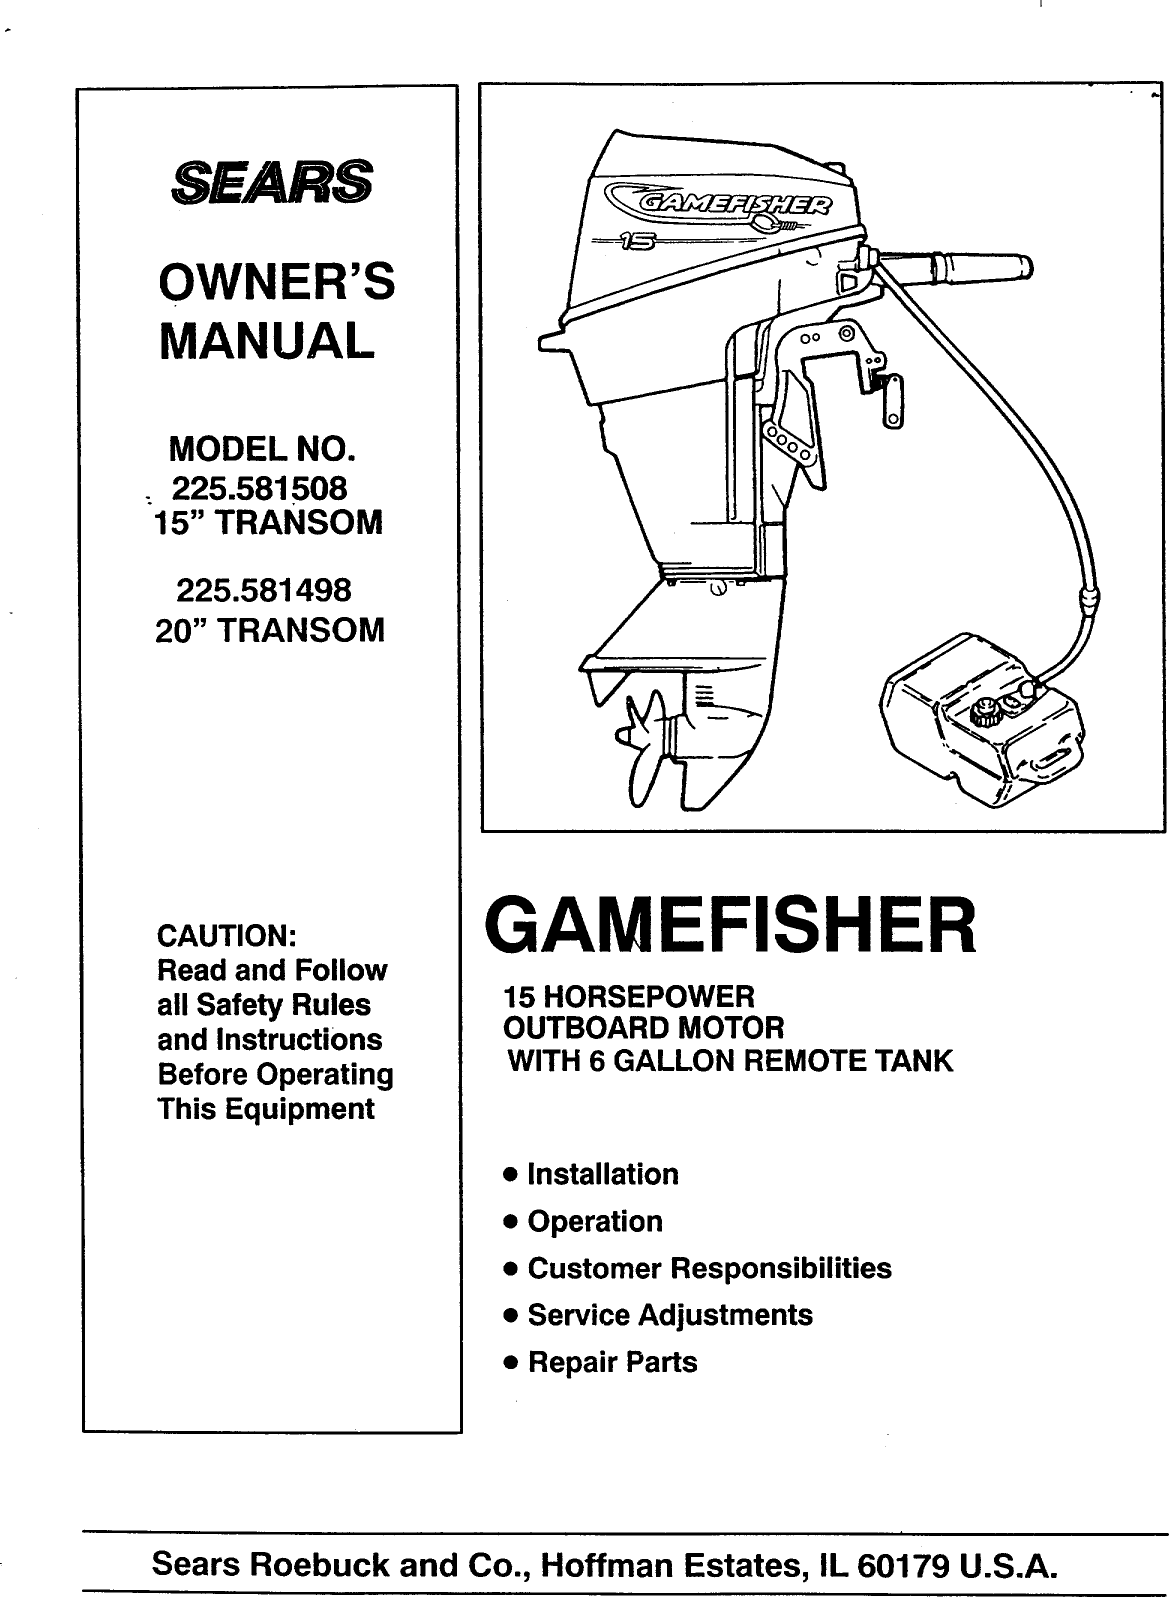 Craftsman 225581498 User Manual GAMEFISHER 15 H.P. 20